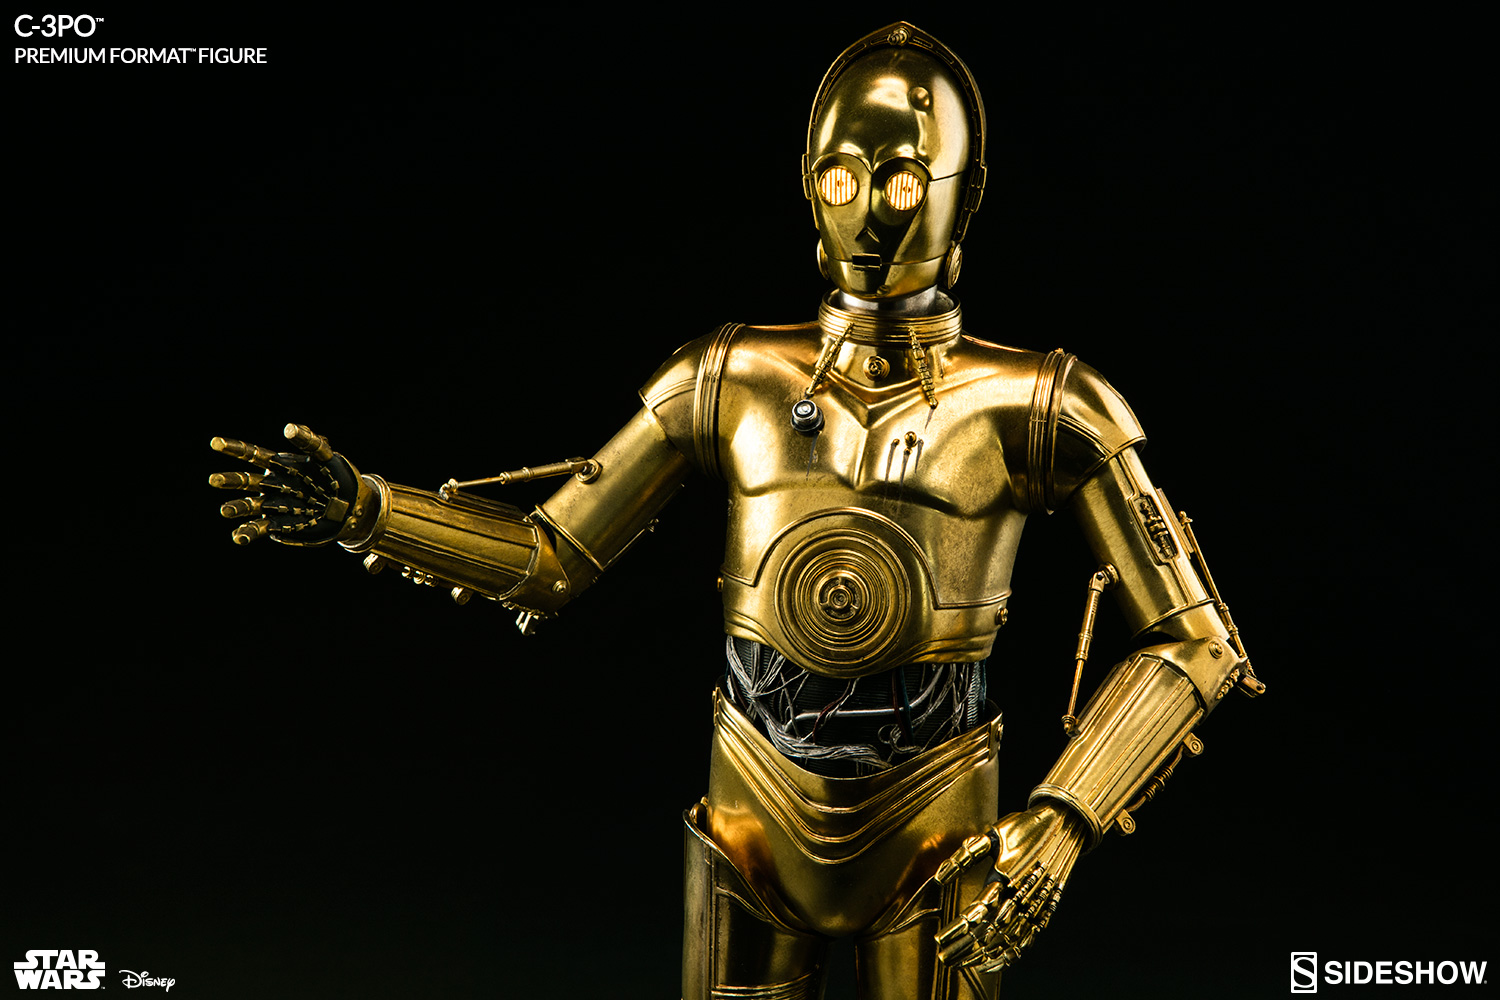 r2 d2 and c 3po premium format final production galleries sideshow collectibles. Black Bedroom Furniture Sets. Home Design Ideas